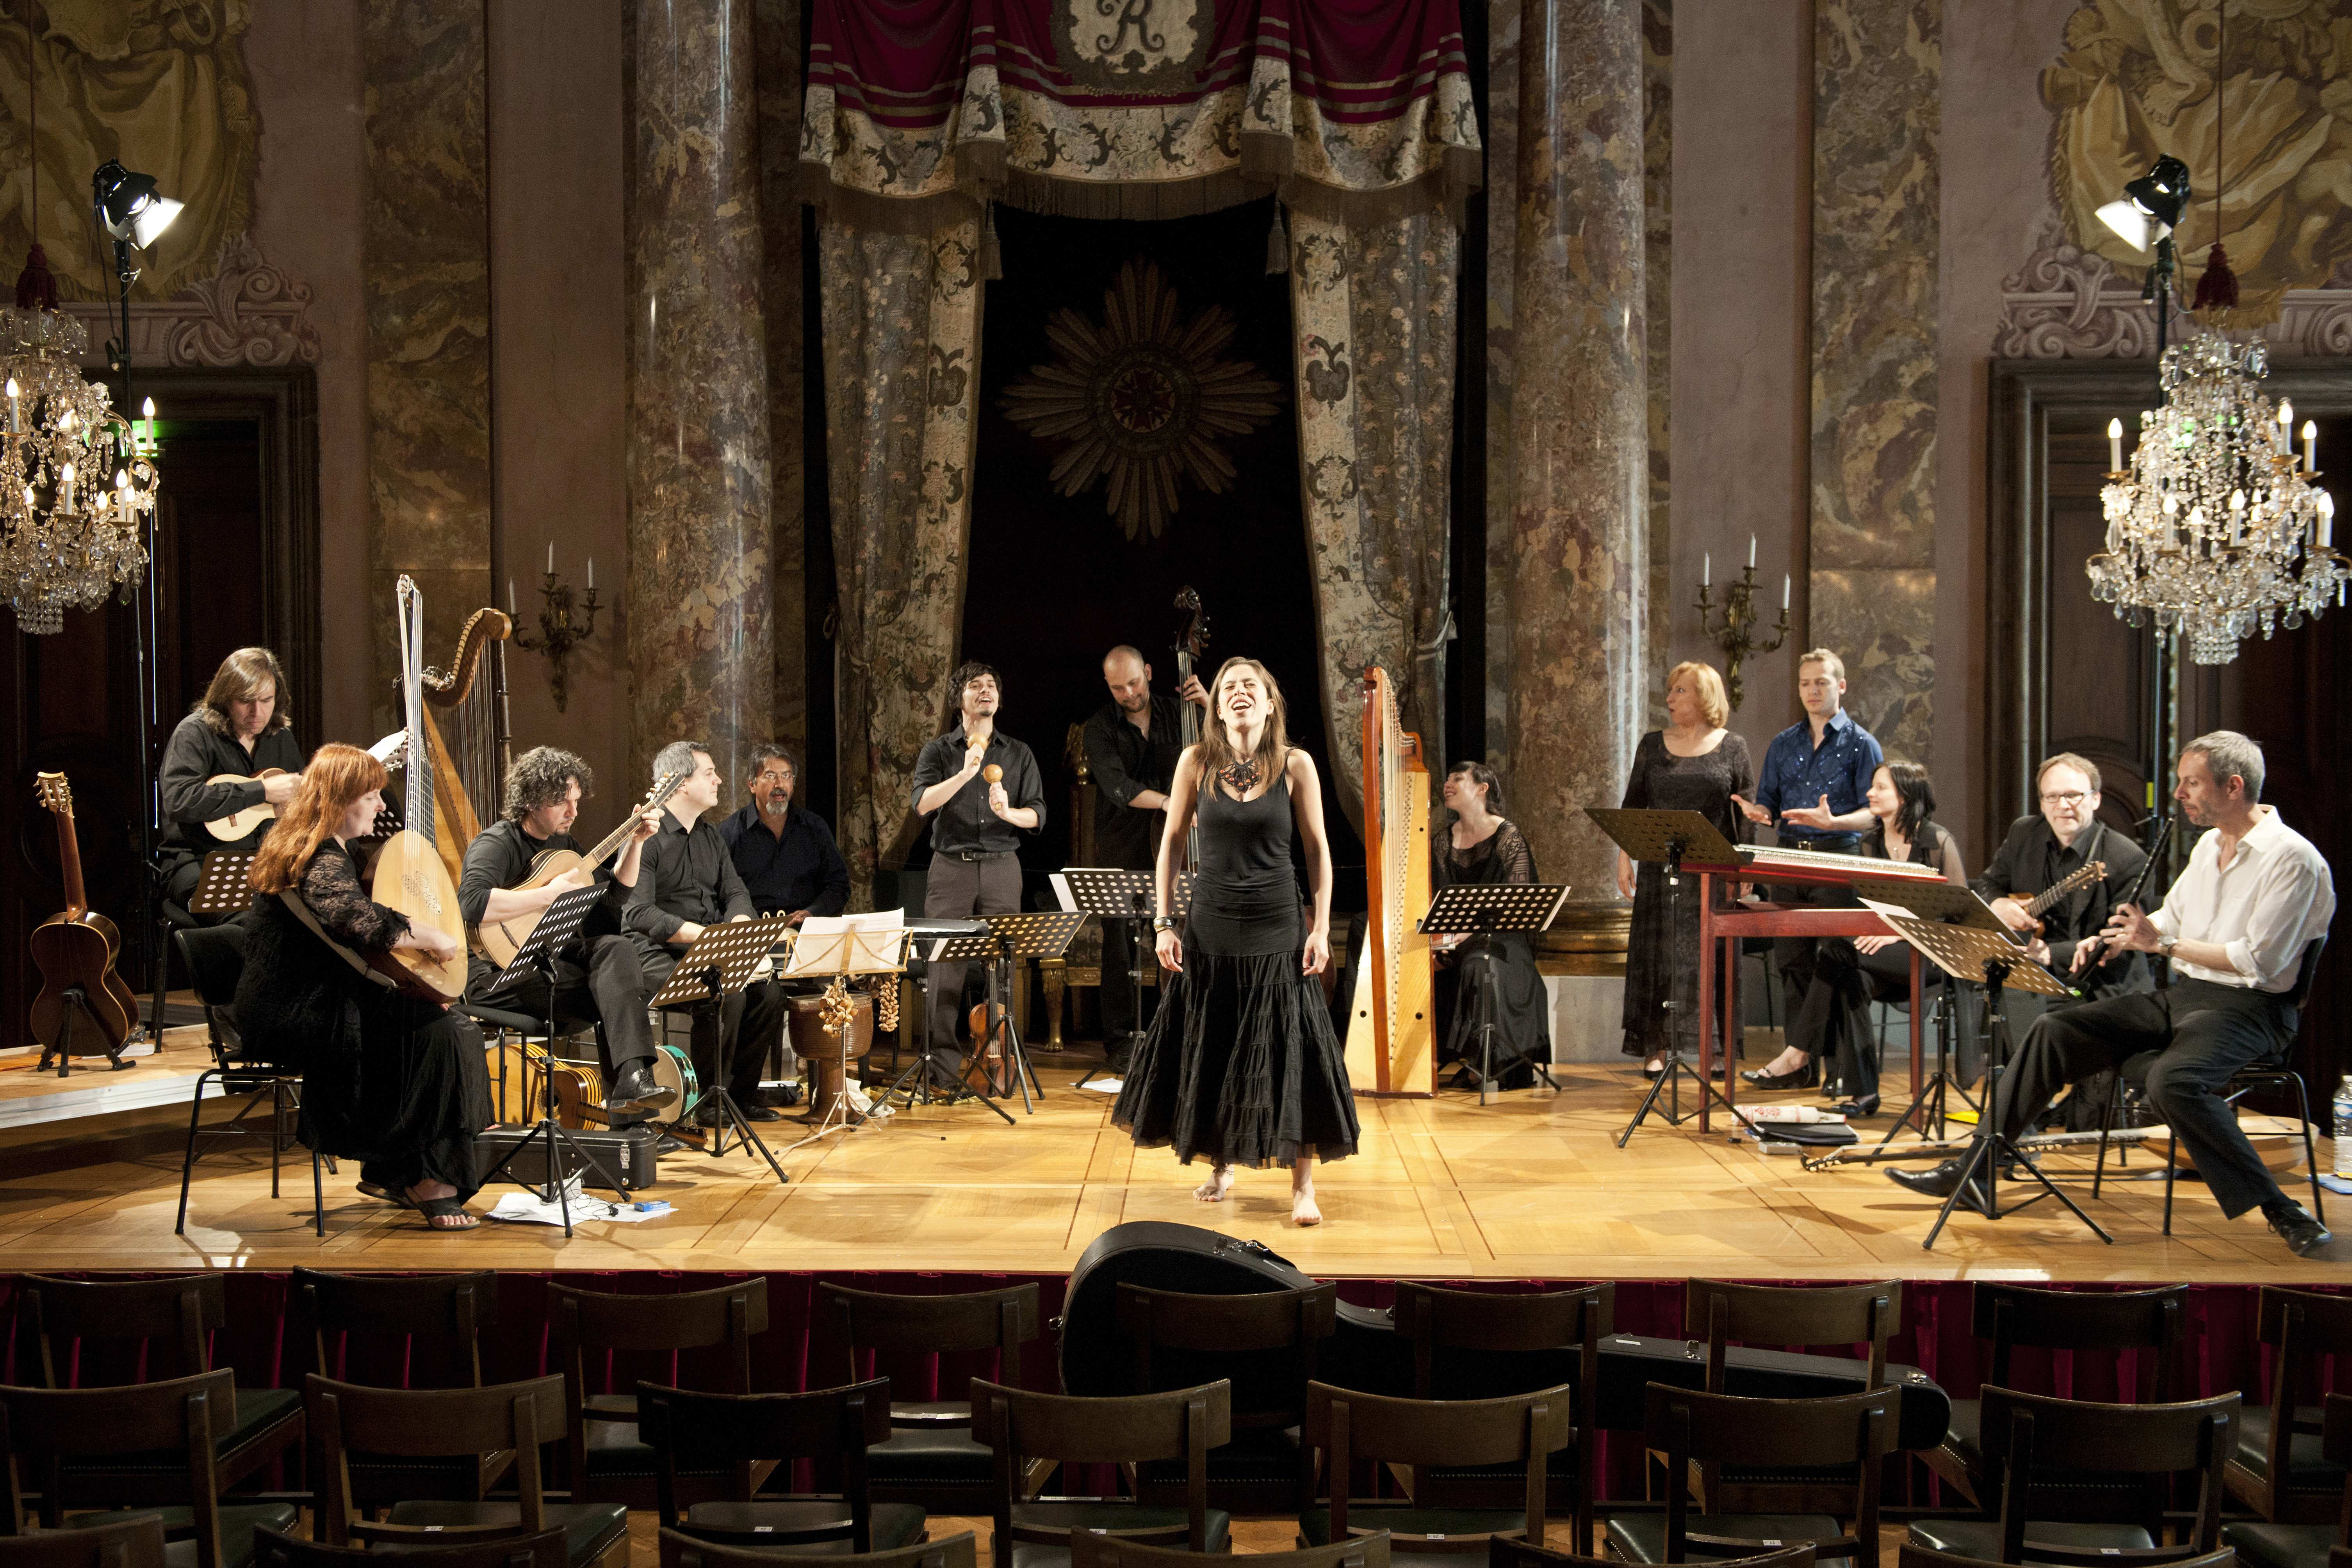 The International Bach Chamber Music Festival